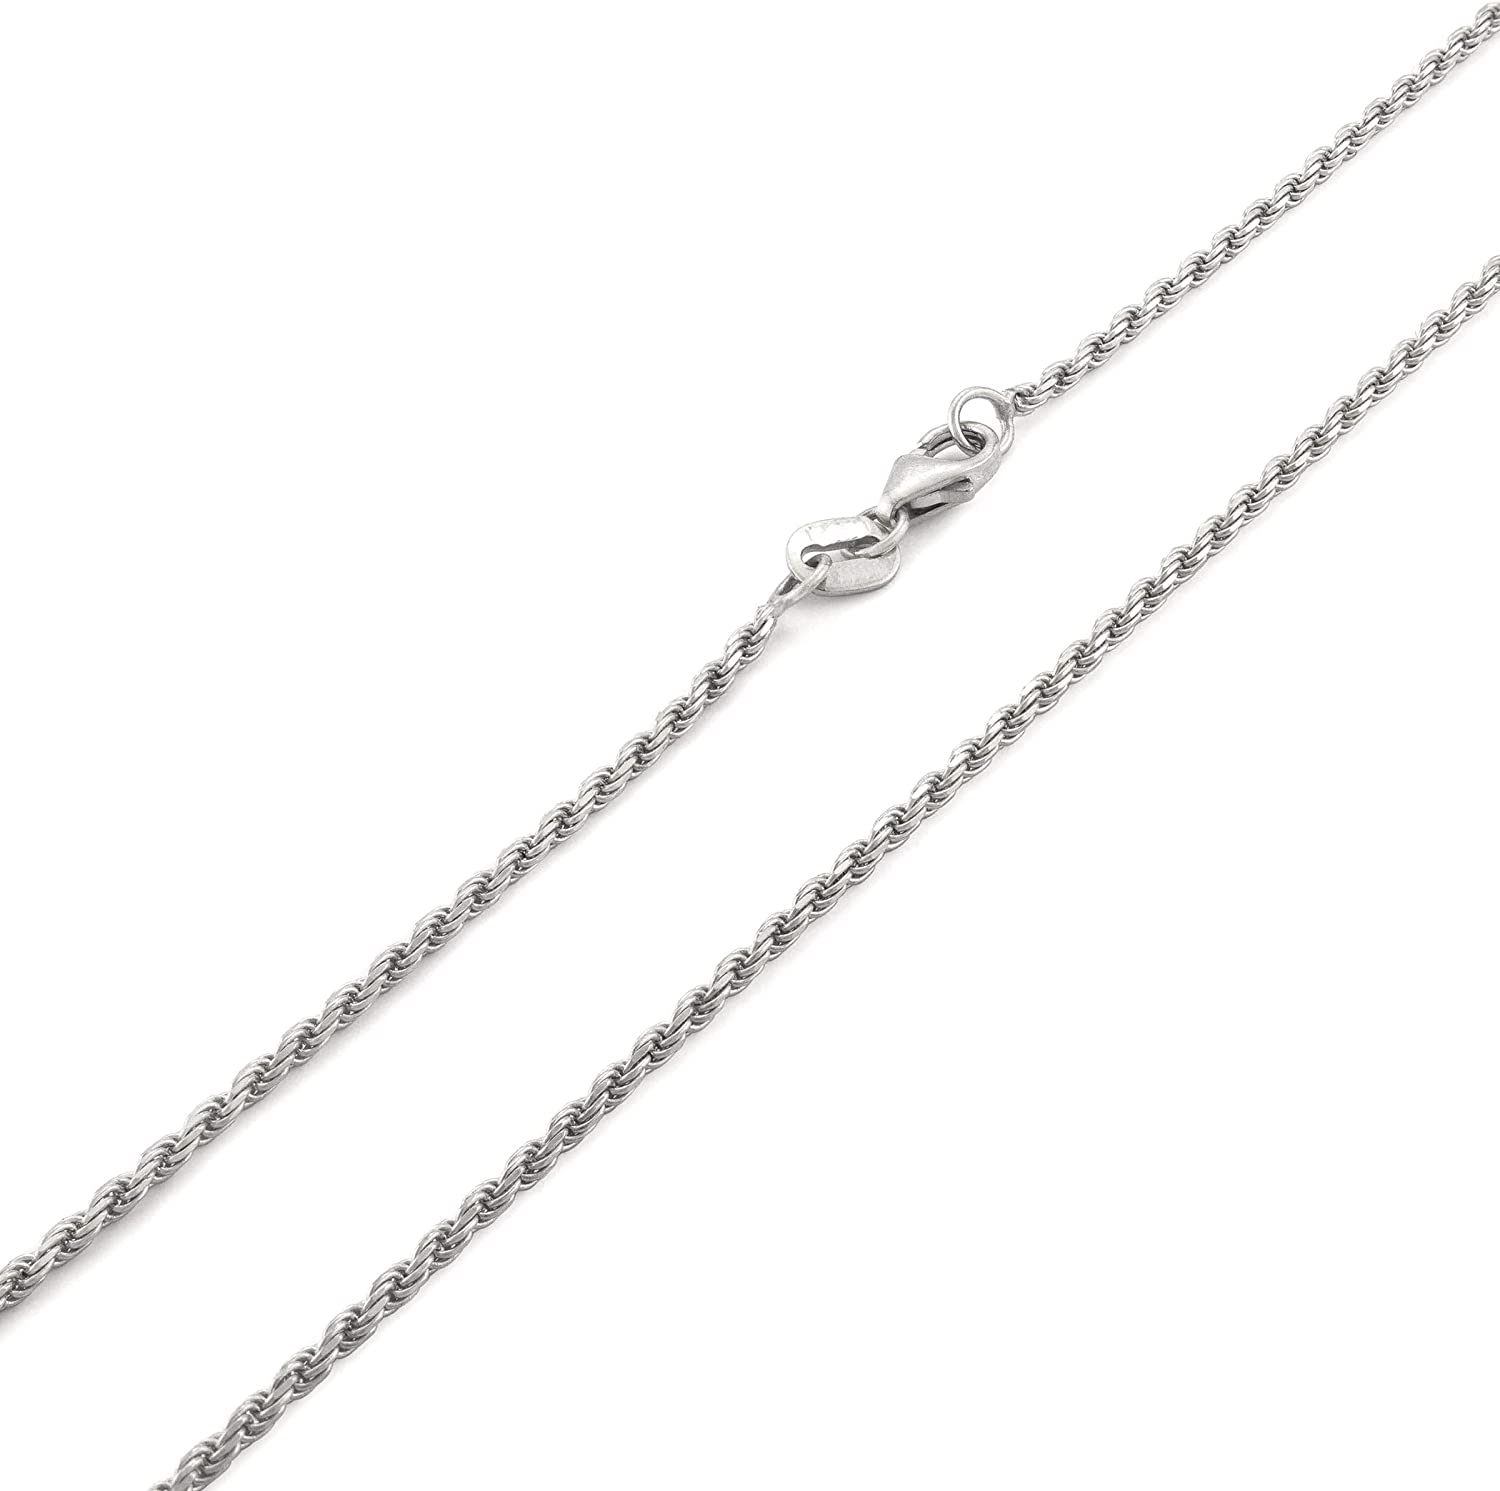 Nuragold 10k White Gold 1.5mm Solid Rope Chain Diamond Cut Pendant Necklace, Mens Womens Lobster Lock 16